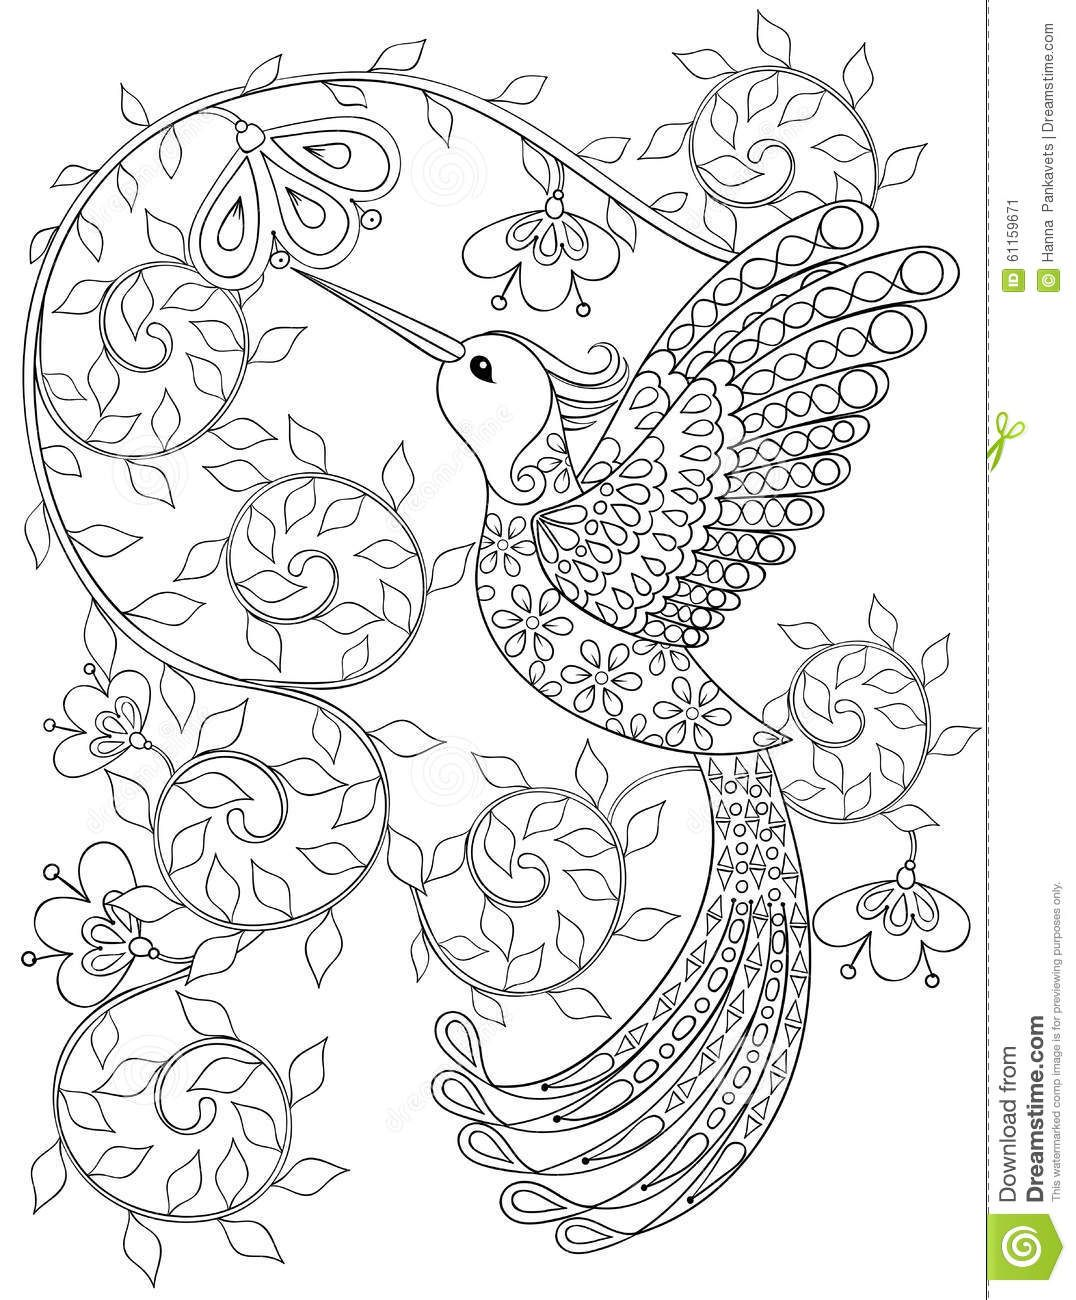 Coloring Page With Hummingbird Zentangle Flying Bird For Adult